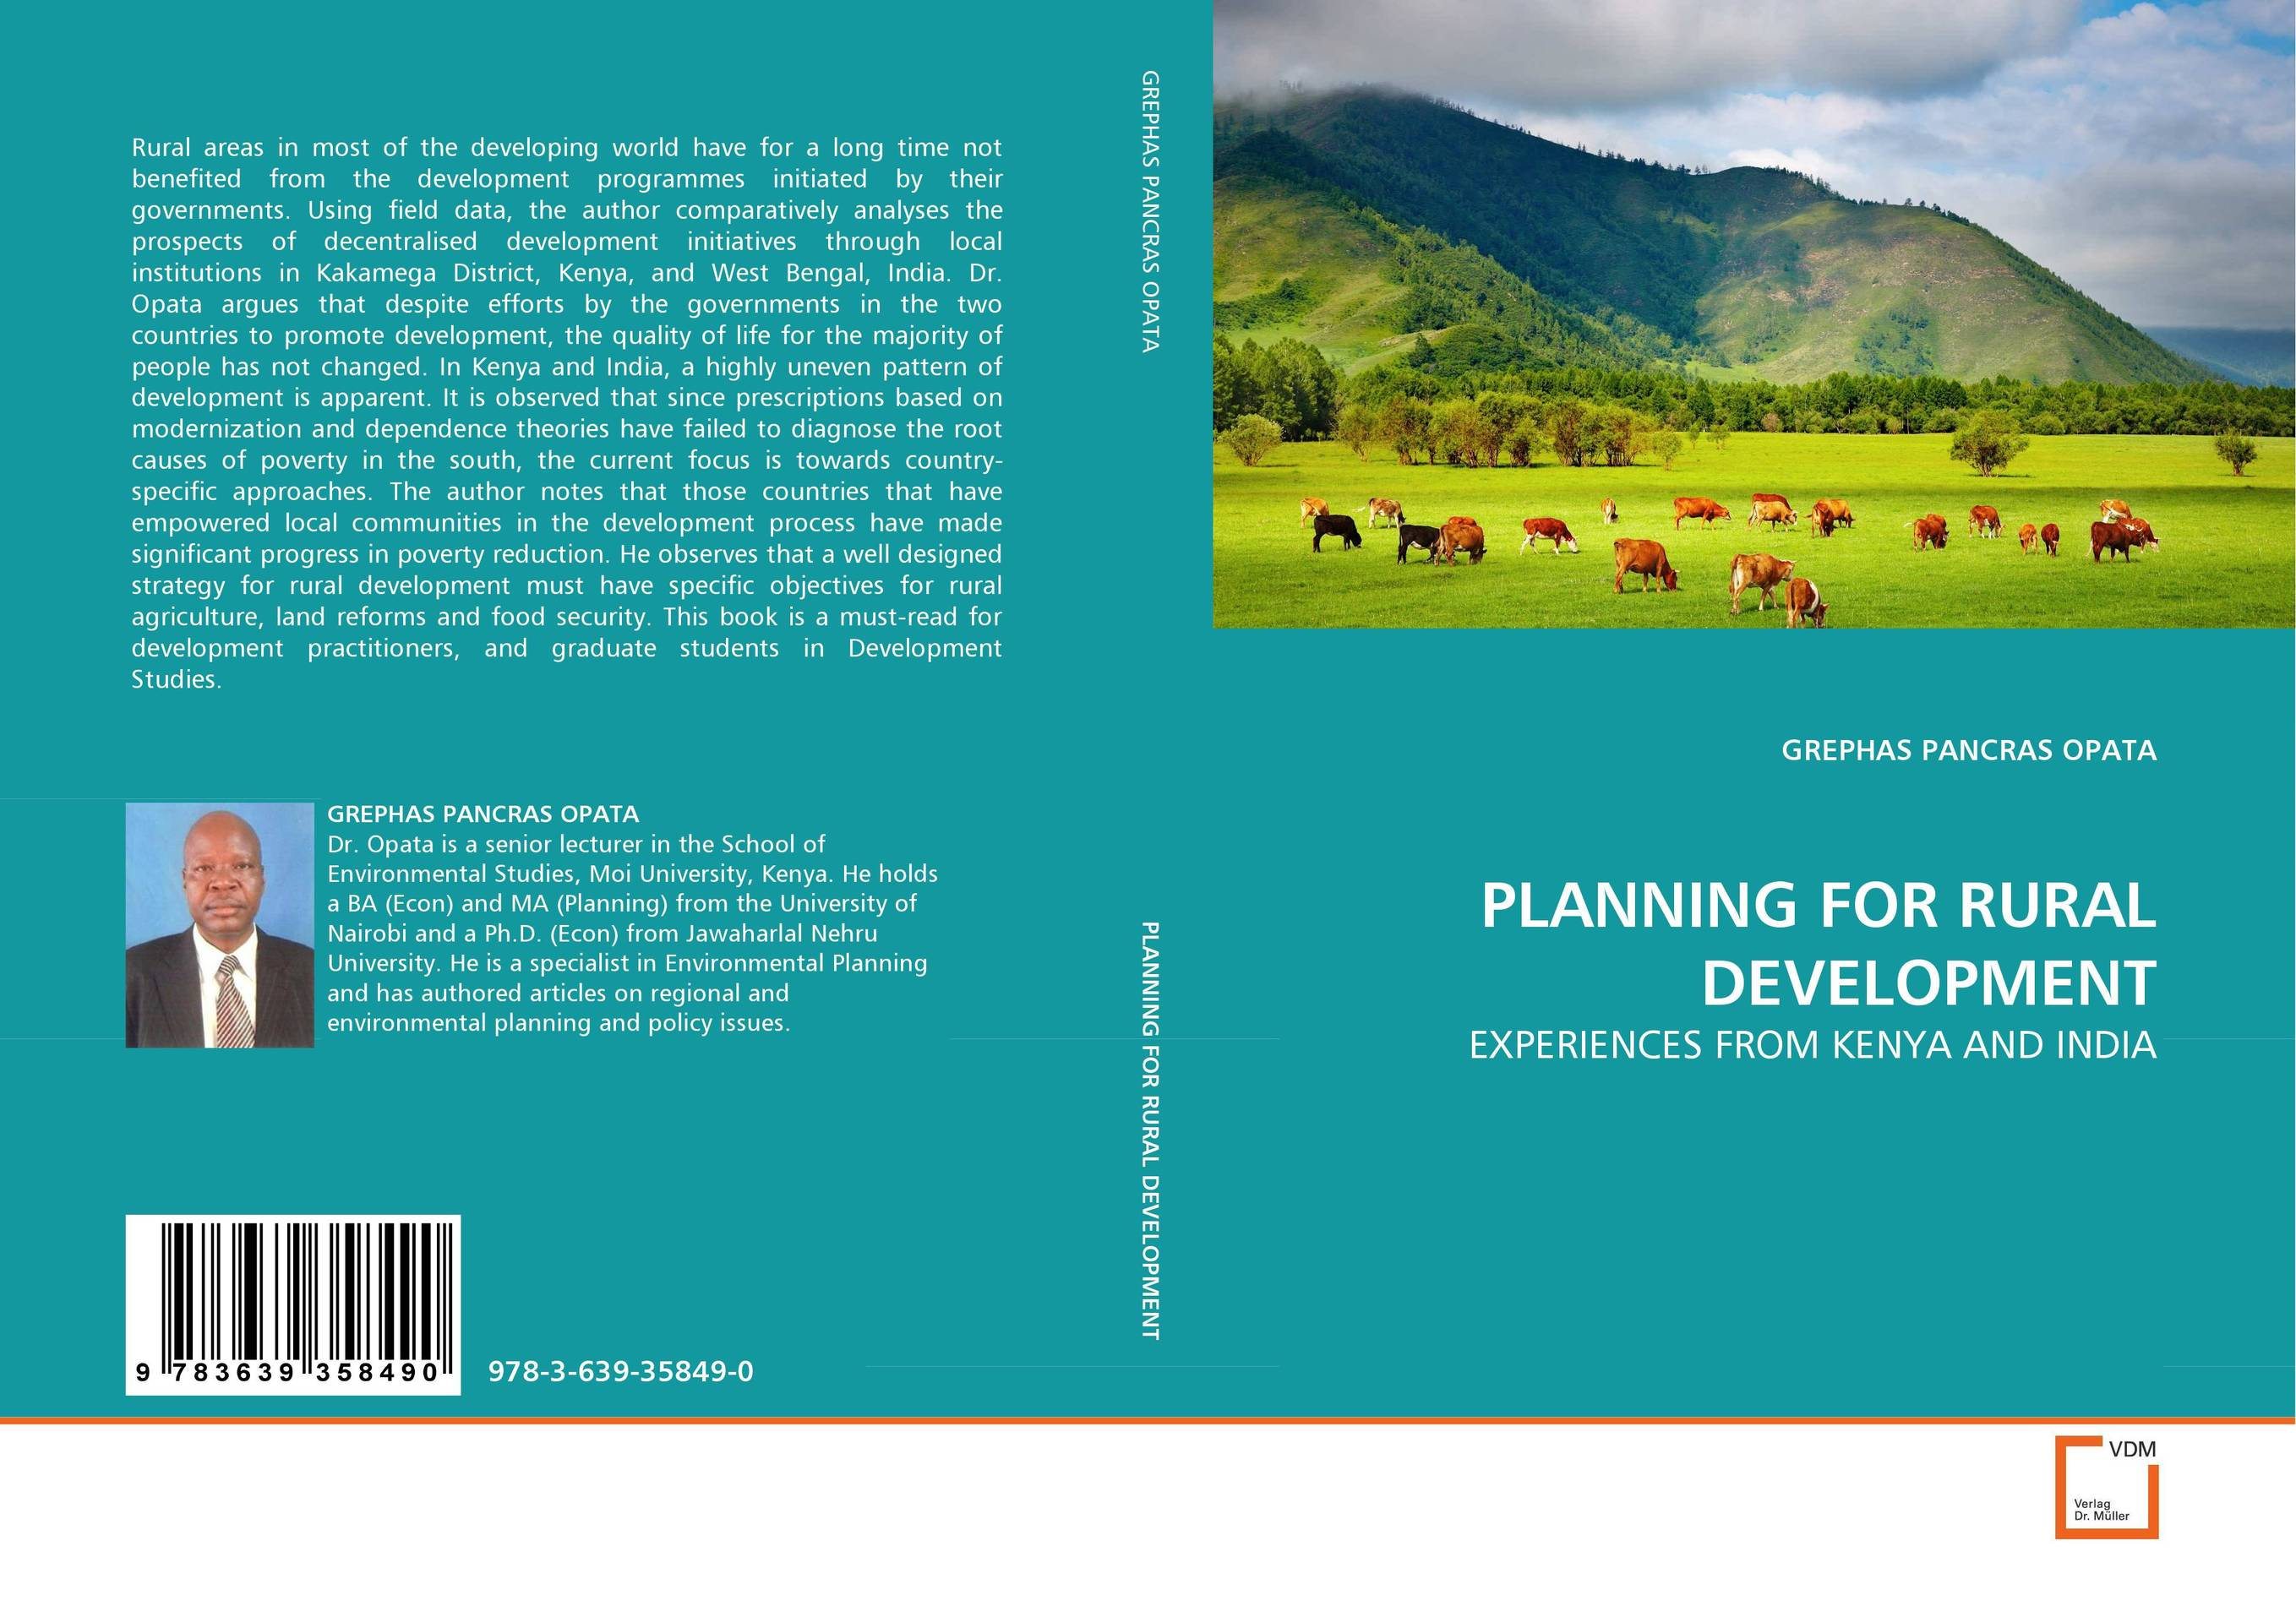 PLANNING FOR RURAL DEVELOPMENT poverty and development in rural india